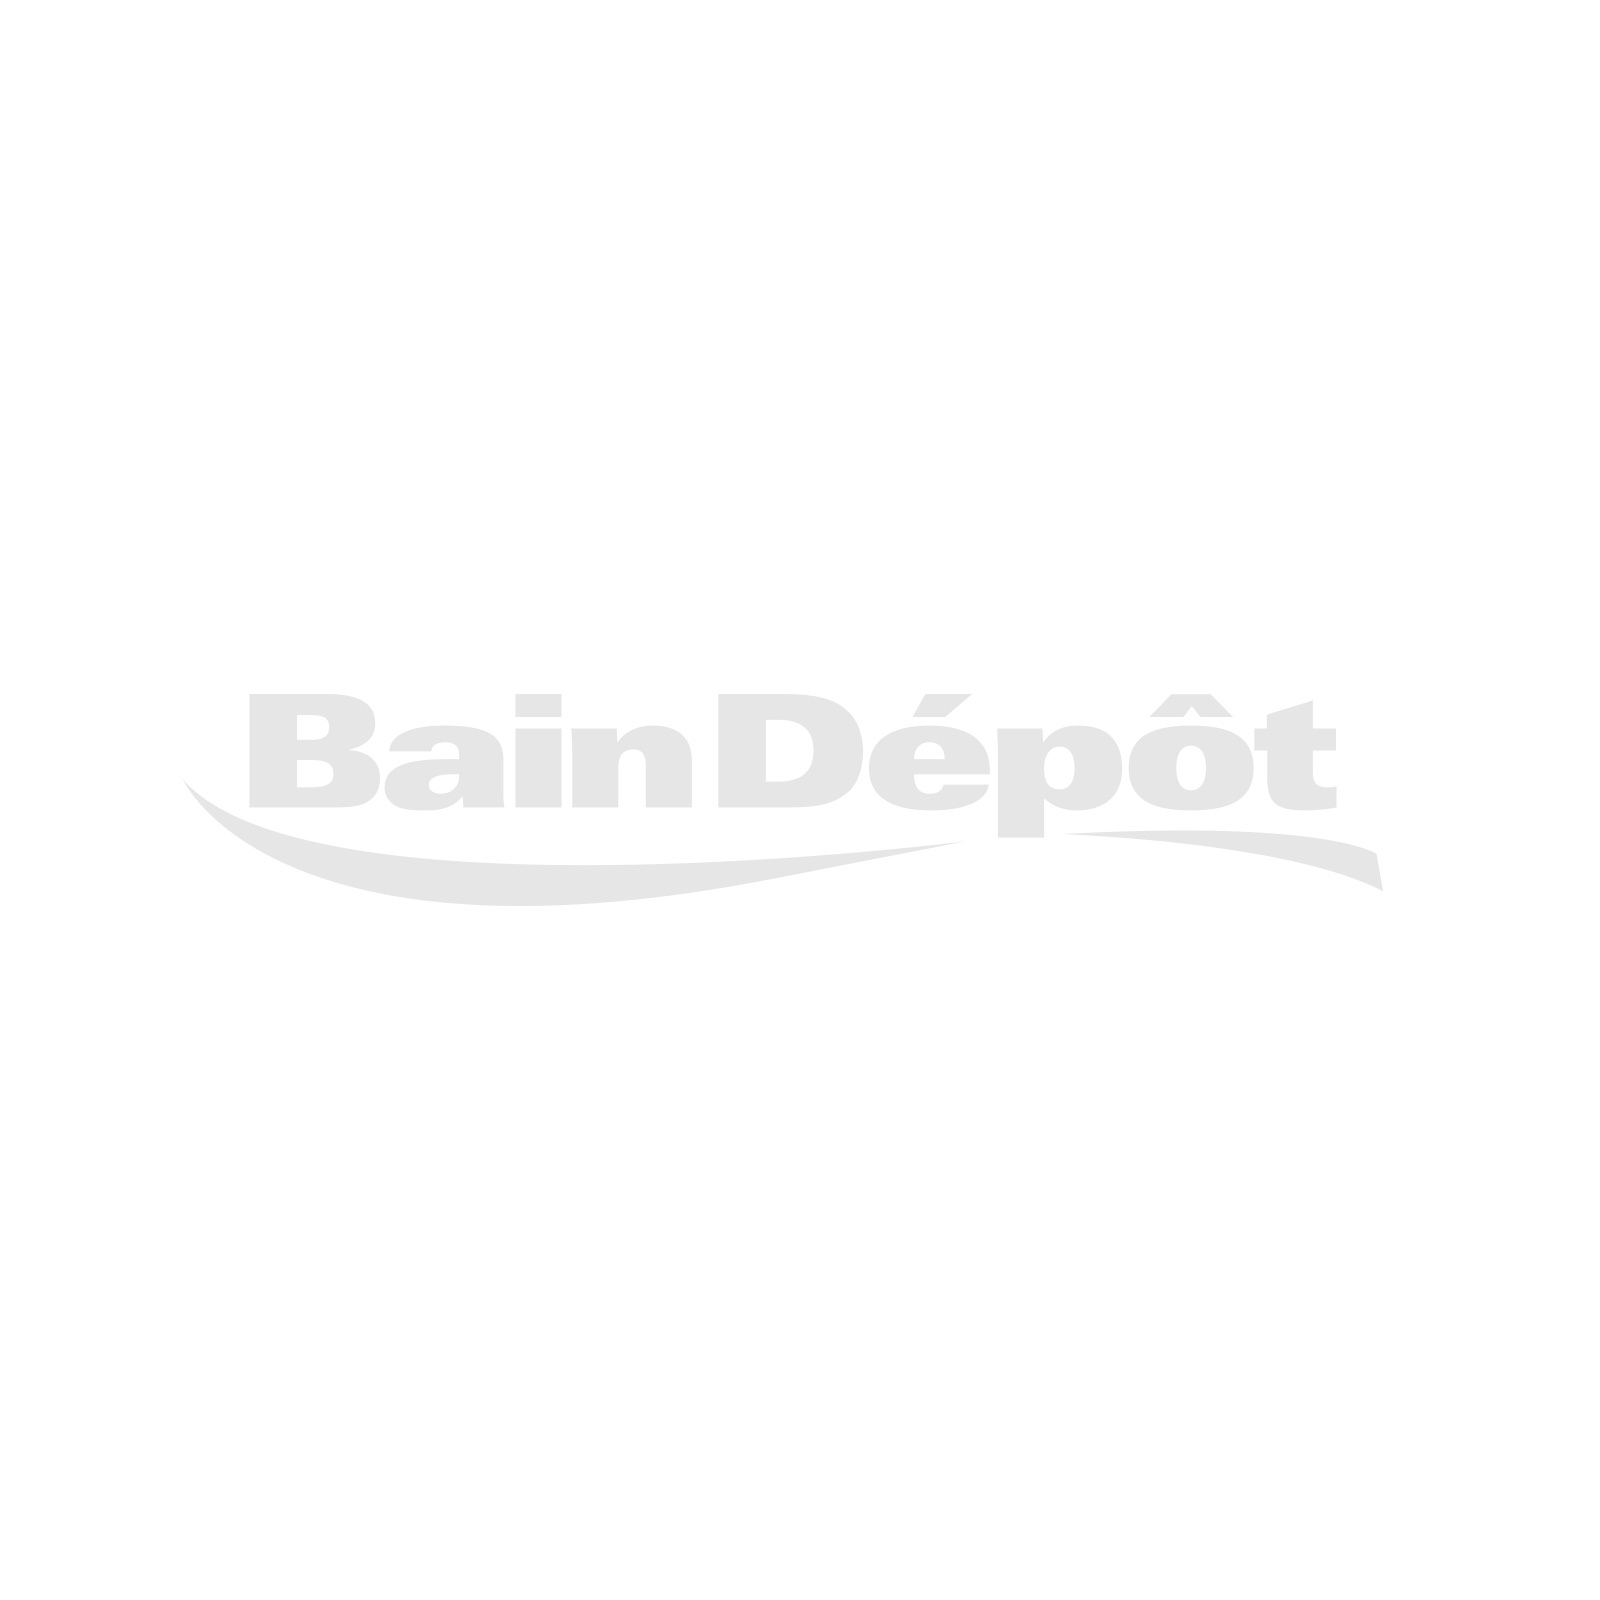 One-piece dual-flush toilet with elongated bowl ALATTI